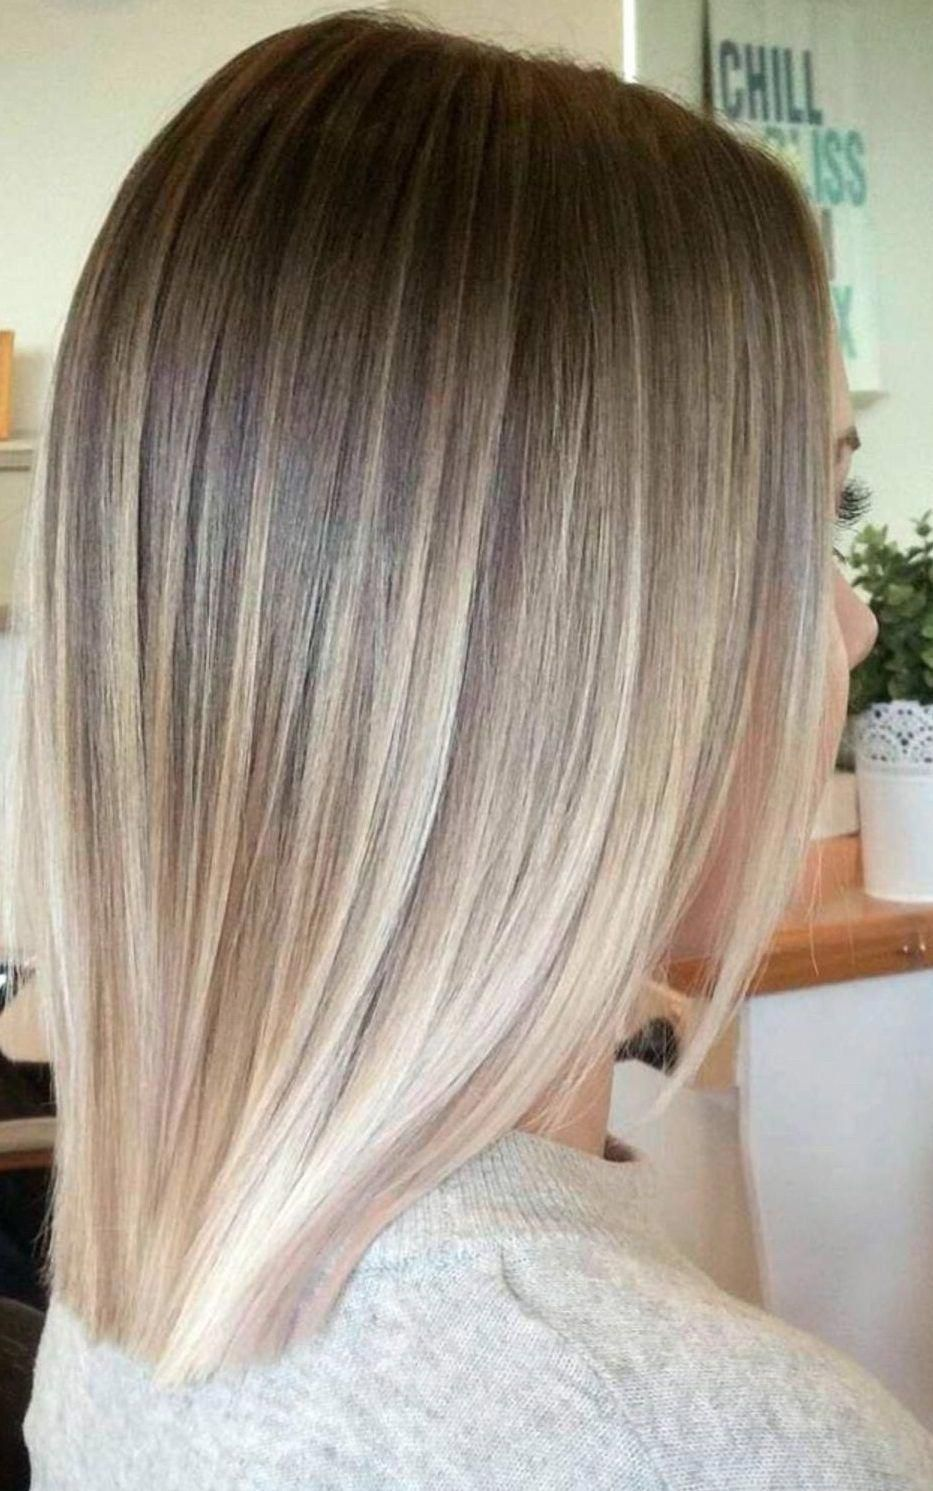 10 Blonde Hair Color Ideas For Short Hair - Blonde Inspirations